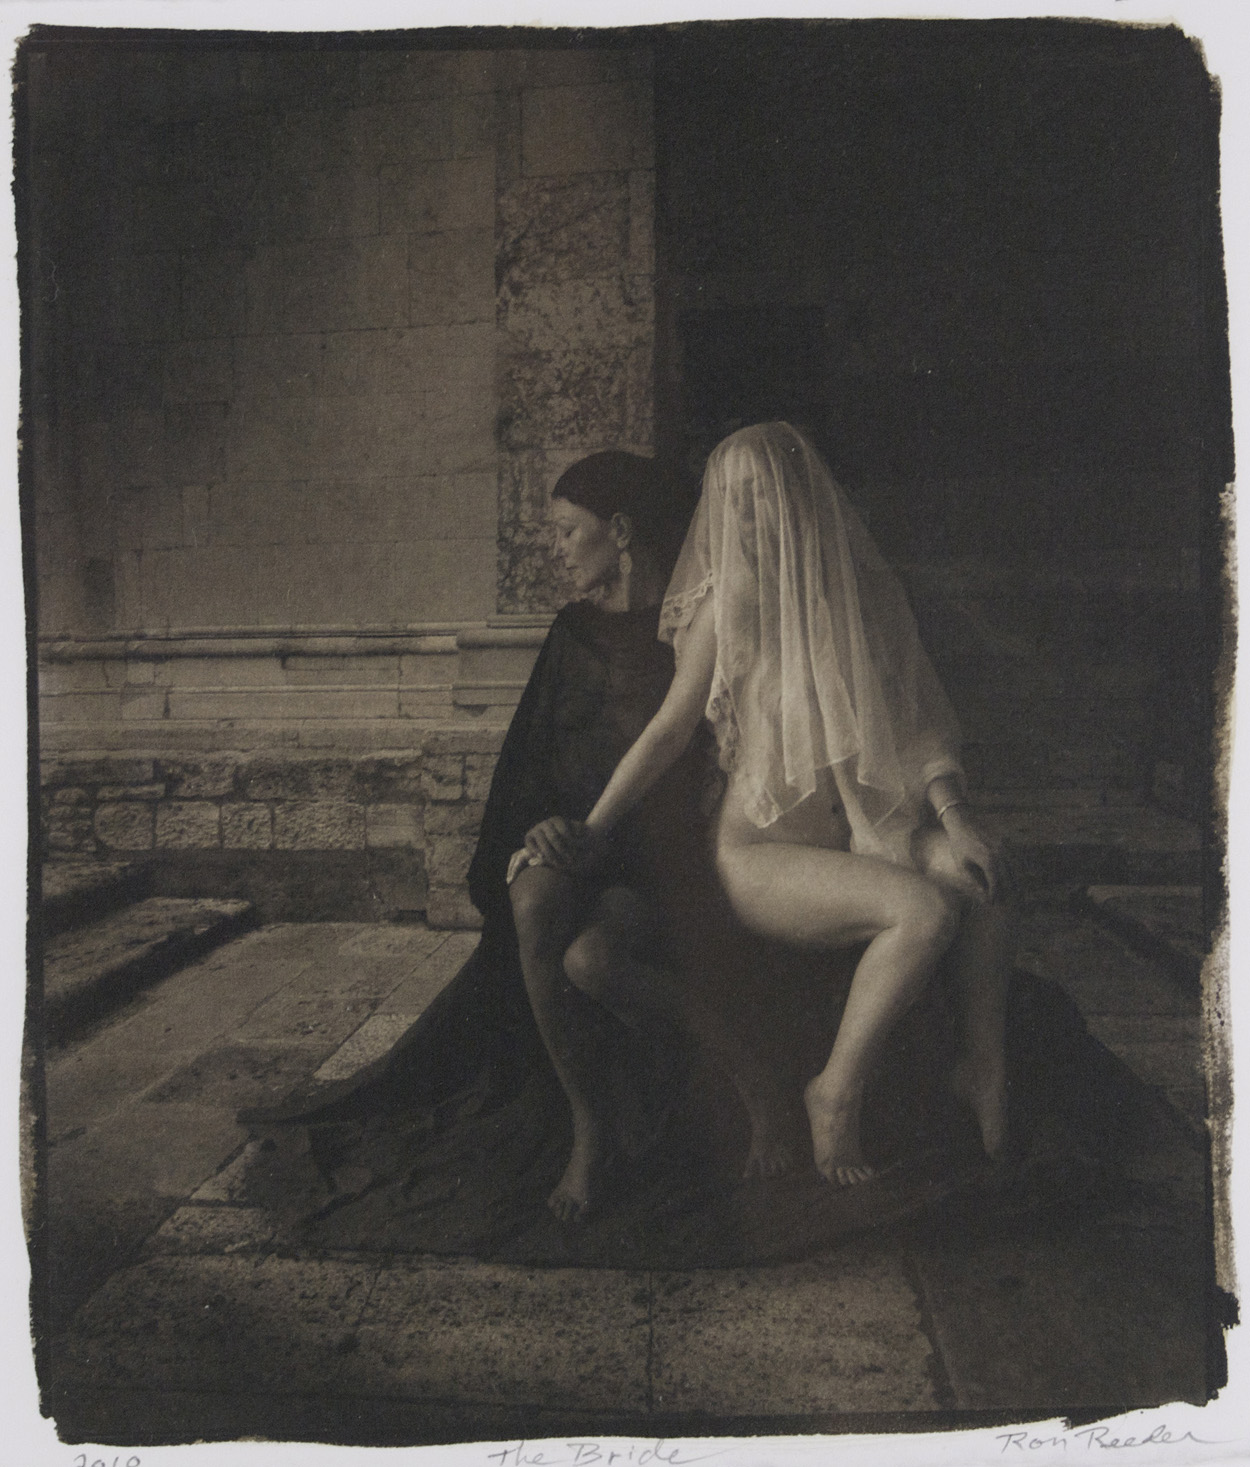 Ron Reeder   The Bride , 2010  Hand-coated palladium prints with an overcoat of gum bichromate